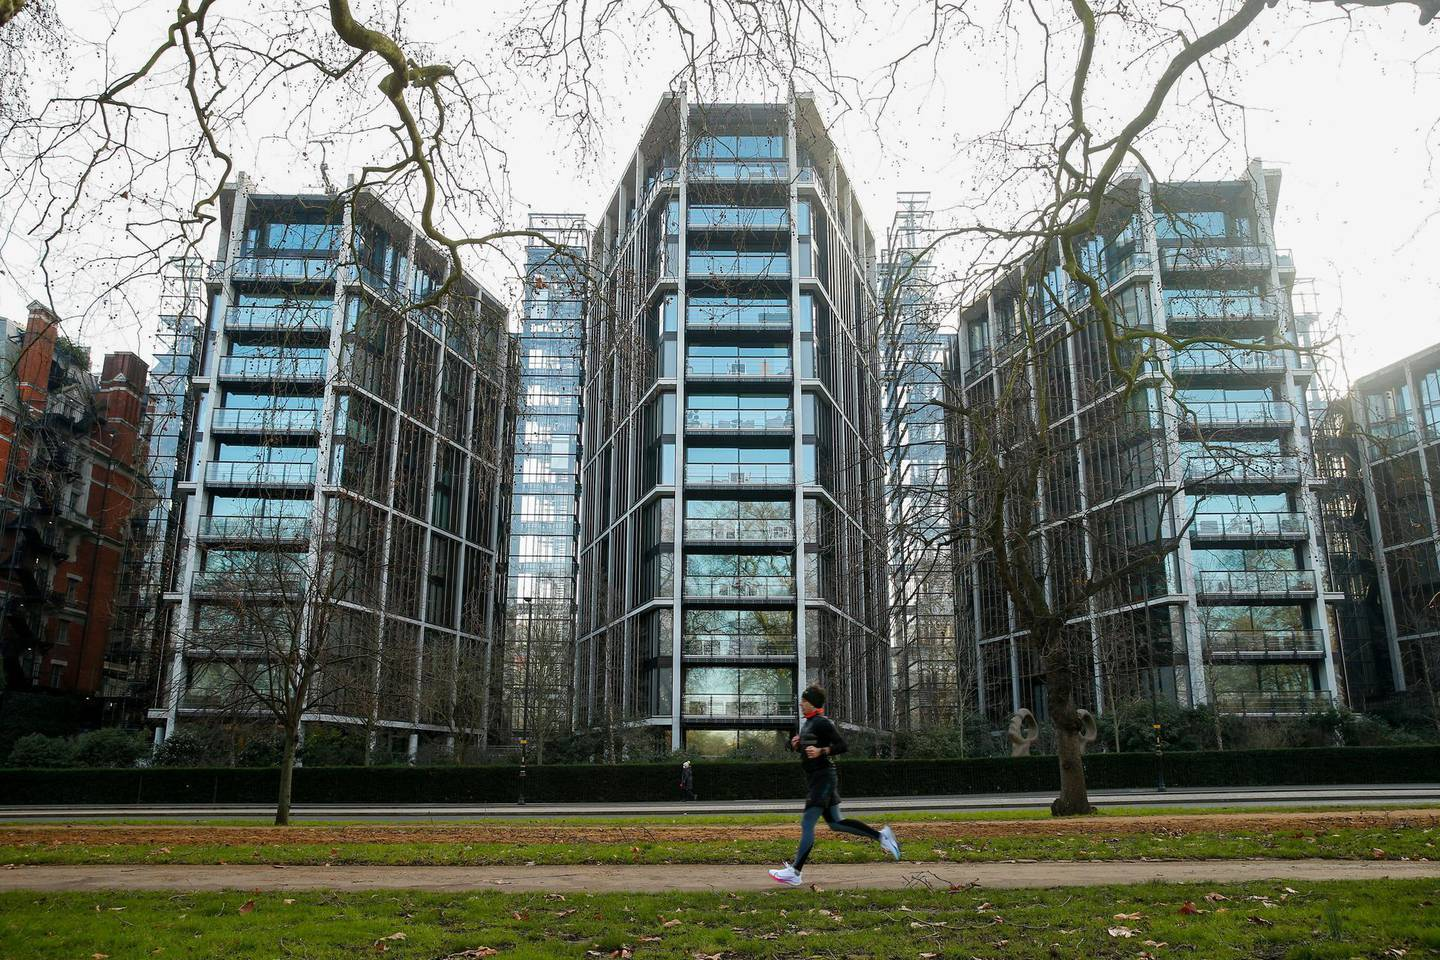 A jogger passes One Hyde Park, a luxury residential and retail complex, in Knightsbridge, London, U.K., on Thursday, Jan. 7, 2021. Persimmon Plc, the U.K.s biggest housebuilder, said the long-term outlook for the countrys housing market remained resilient despite the economic gloom and latest national lockdown. Photographer: Hollie Adams/Bloomberg via Getty Images